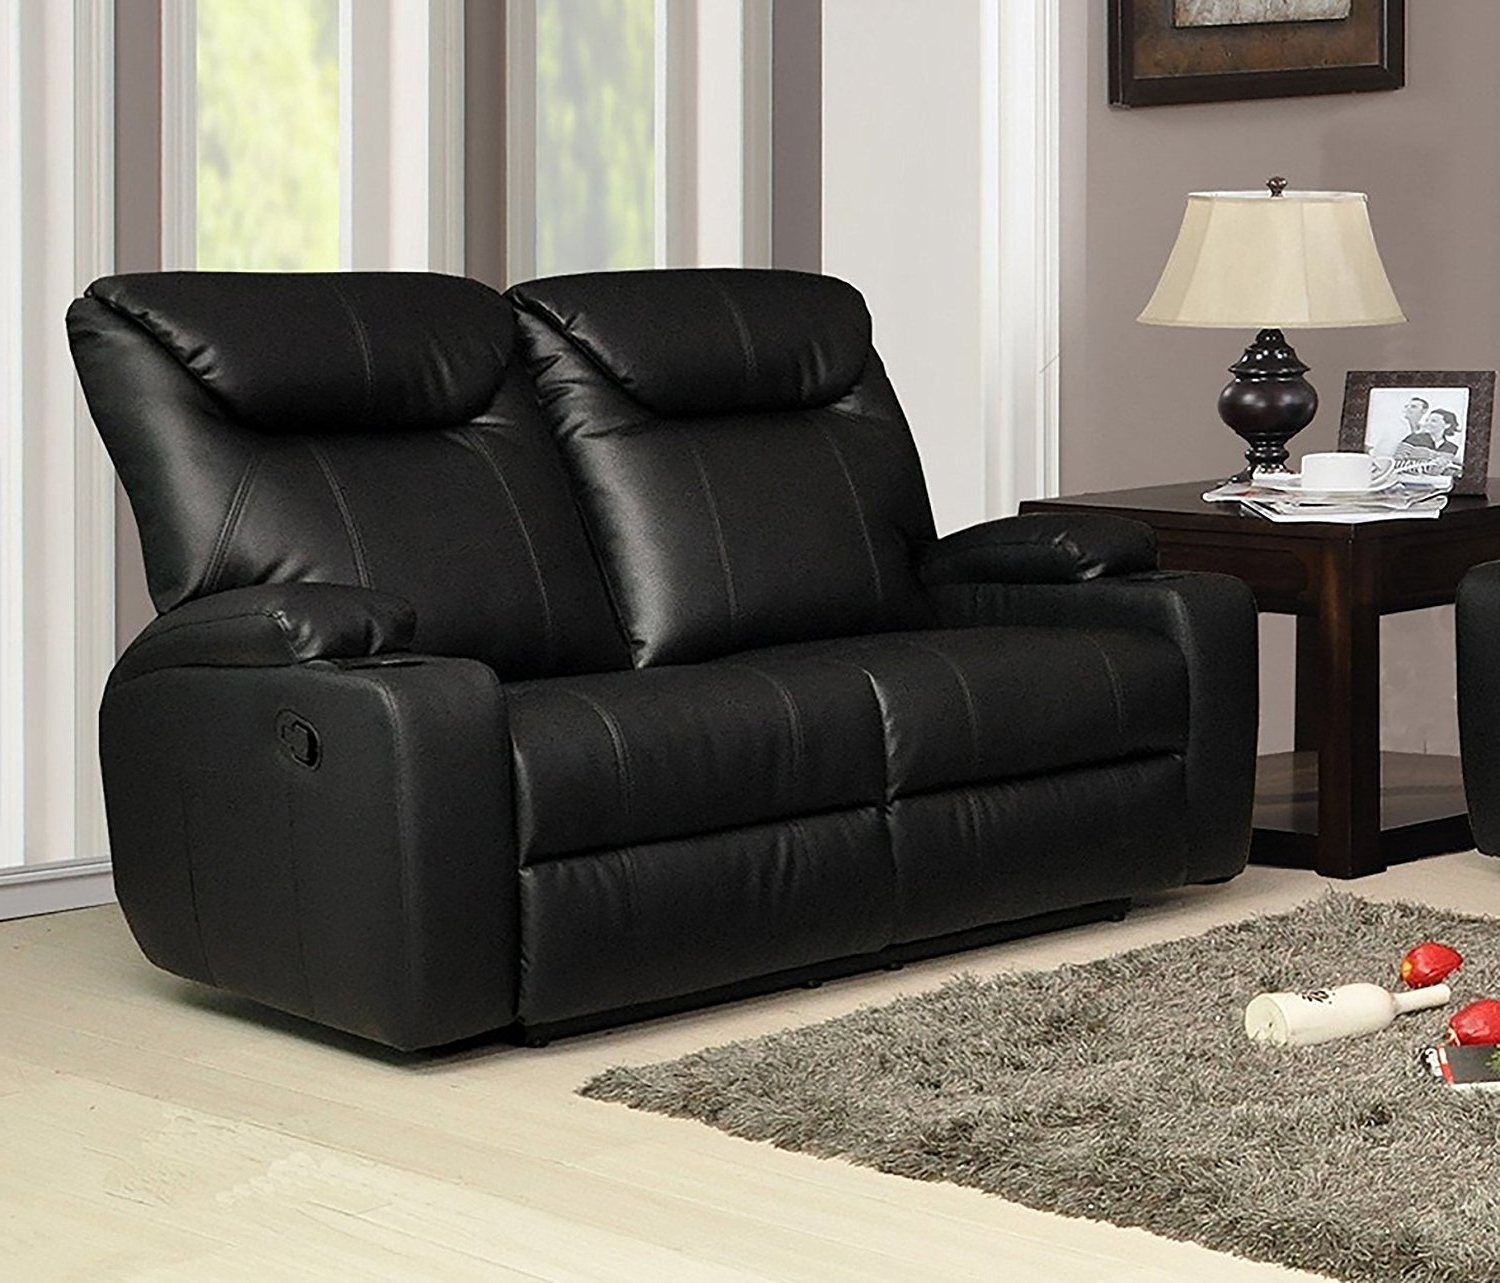 2 Seater Leather Recliner Sofa Cheap Reclining Loveseat With Throughout Famous 2 Seater Recliner Leather Sofas (View 1 of 20)